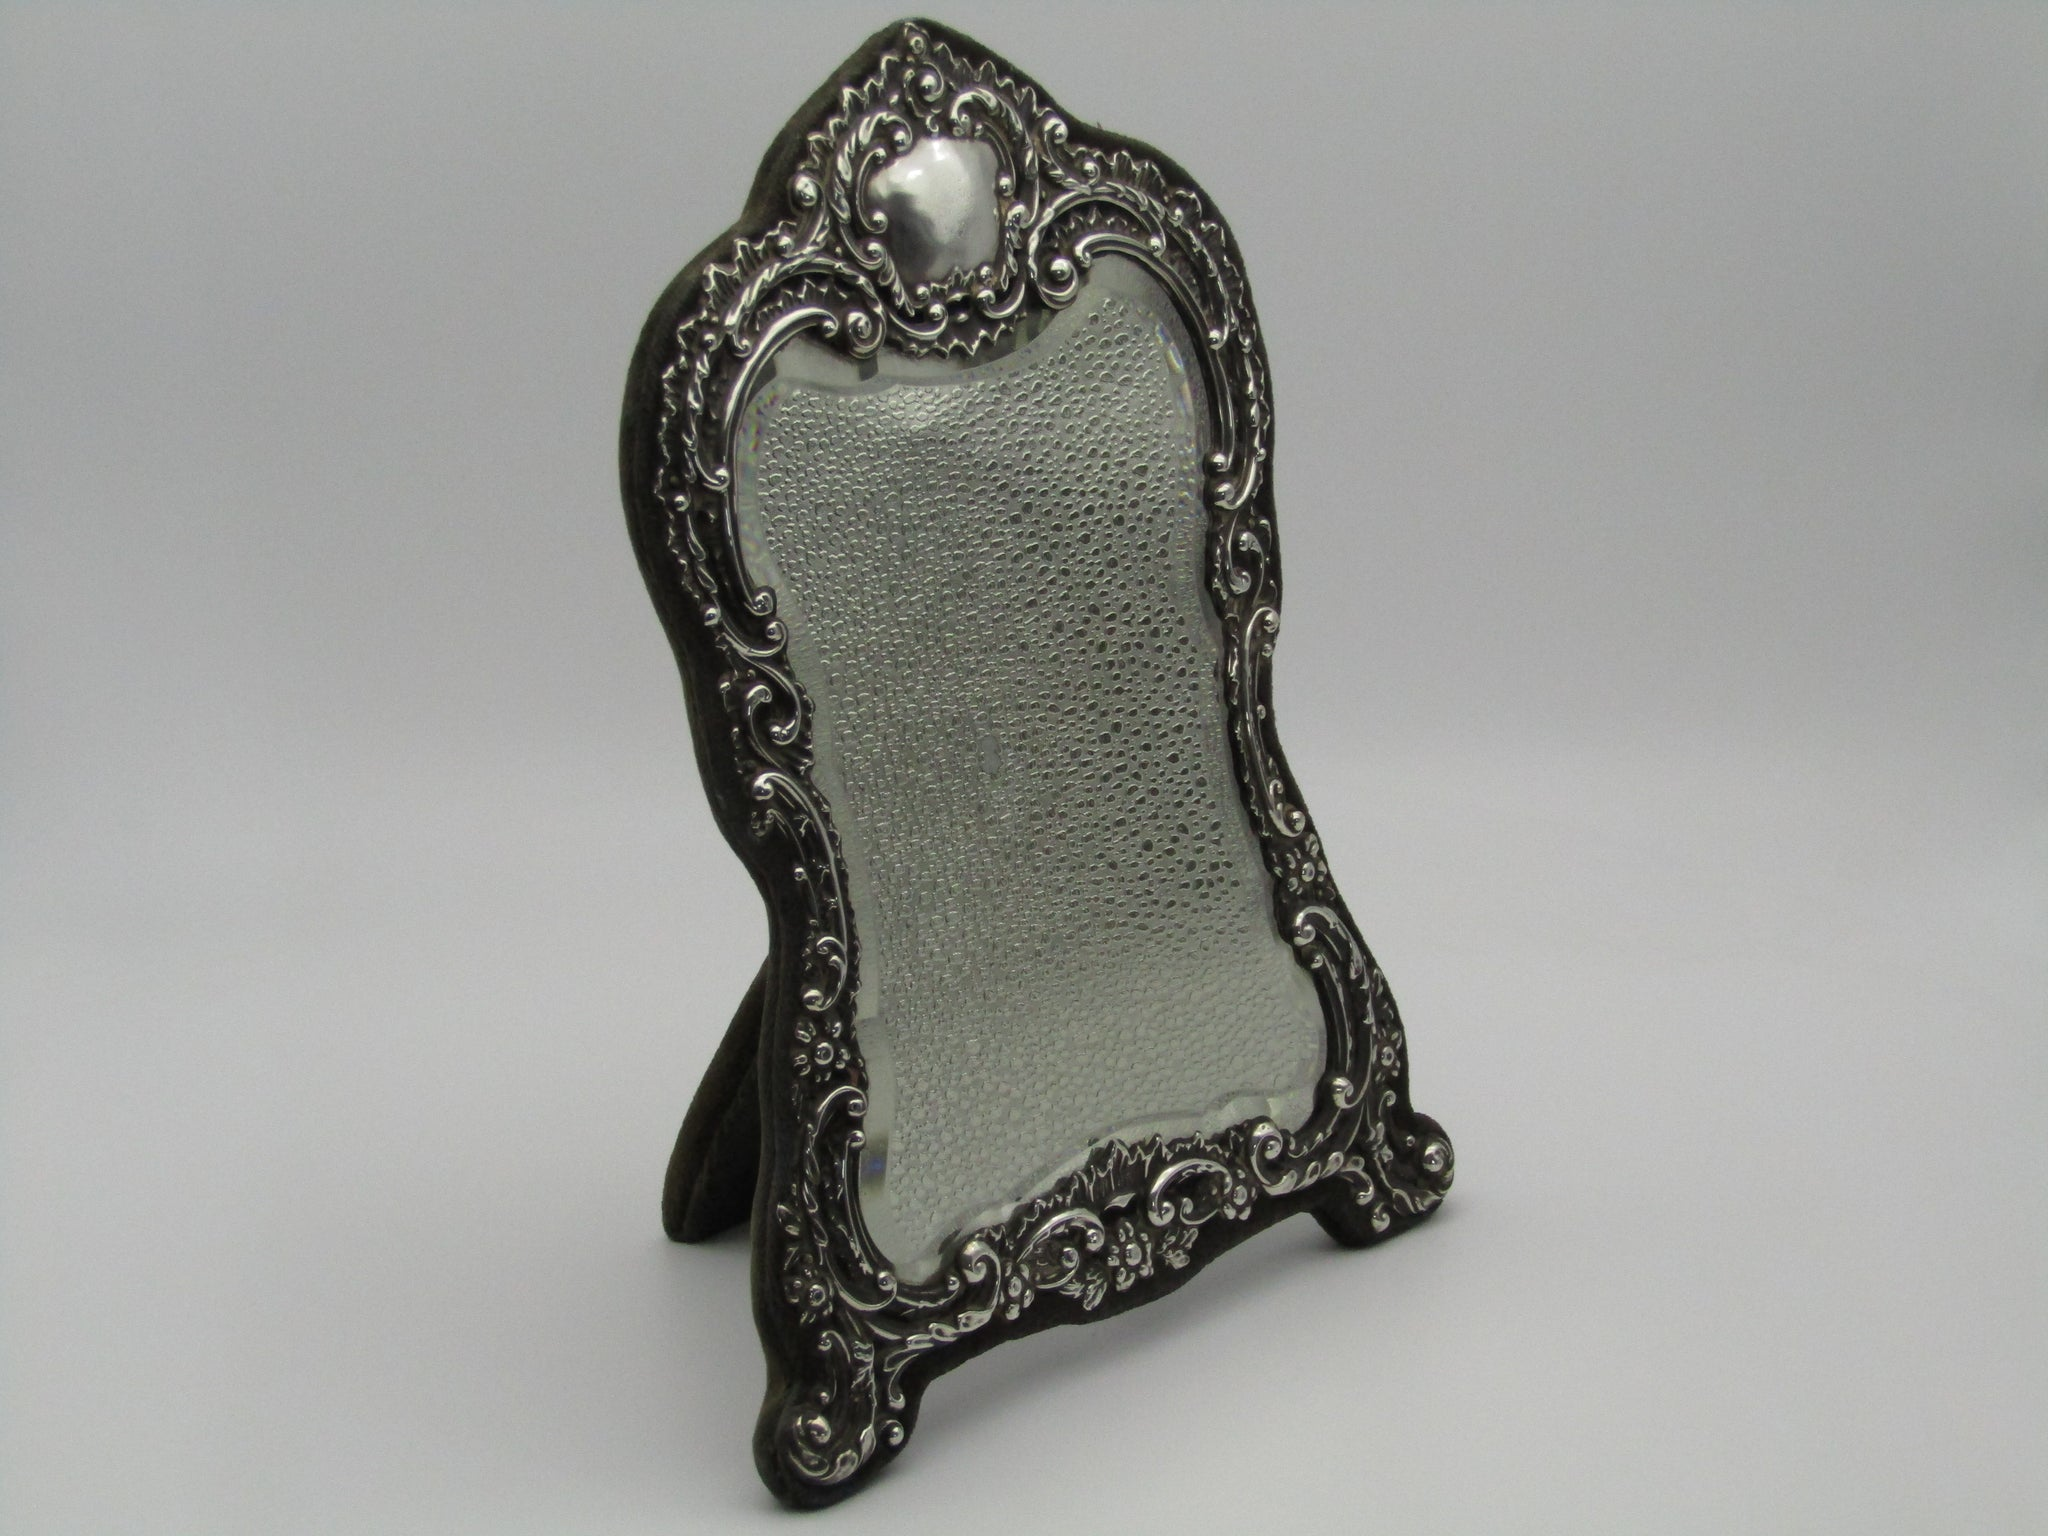 Silver mirror by H. Matthews, made in Birmingham, England, in the year 1902.